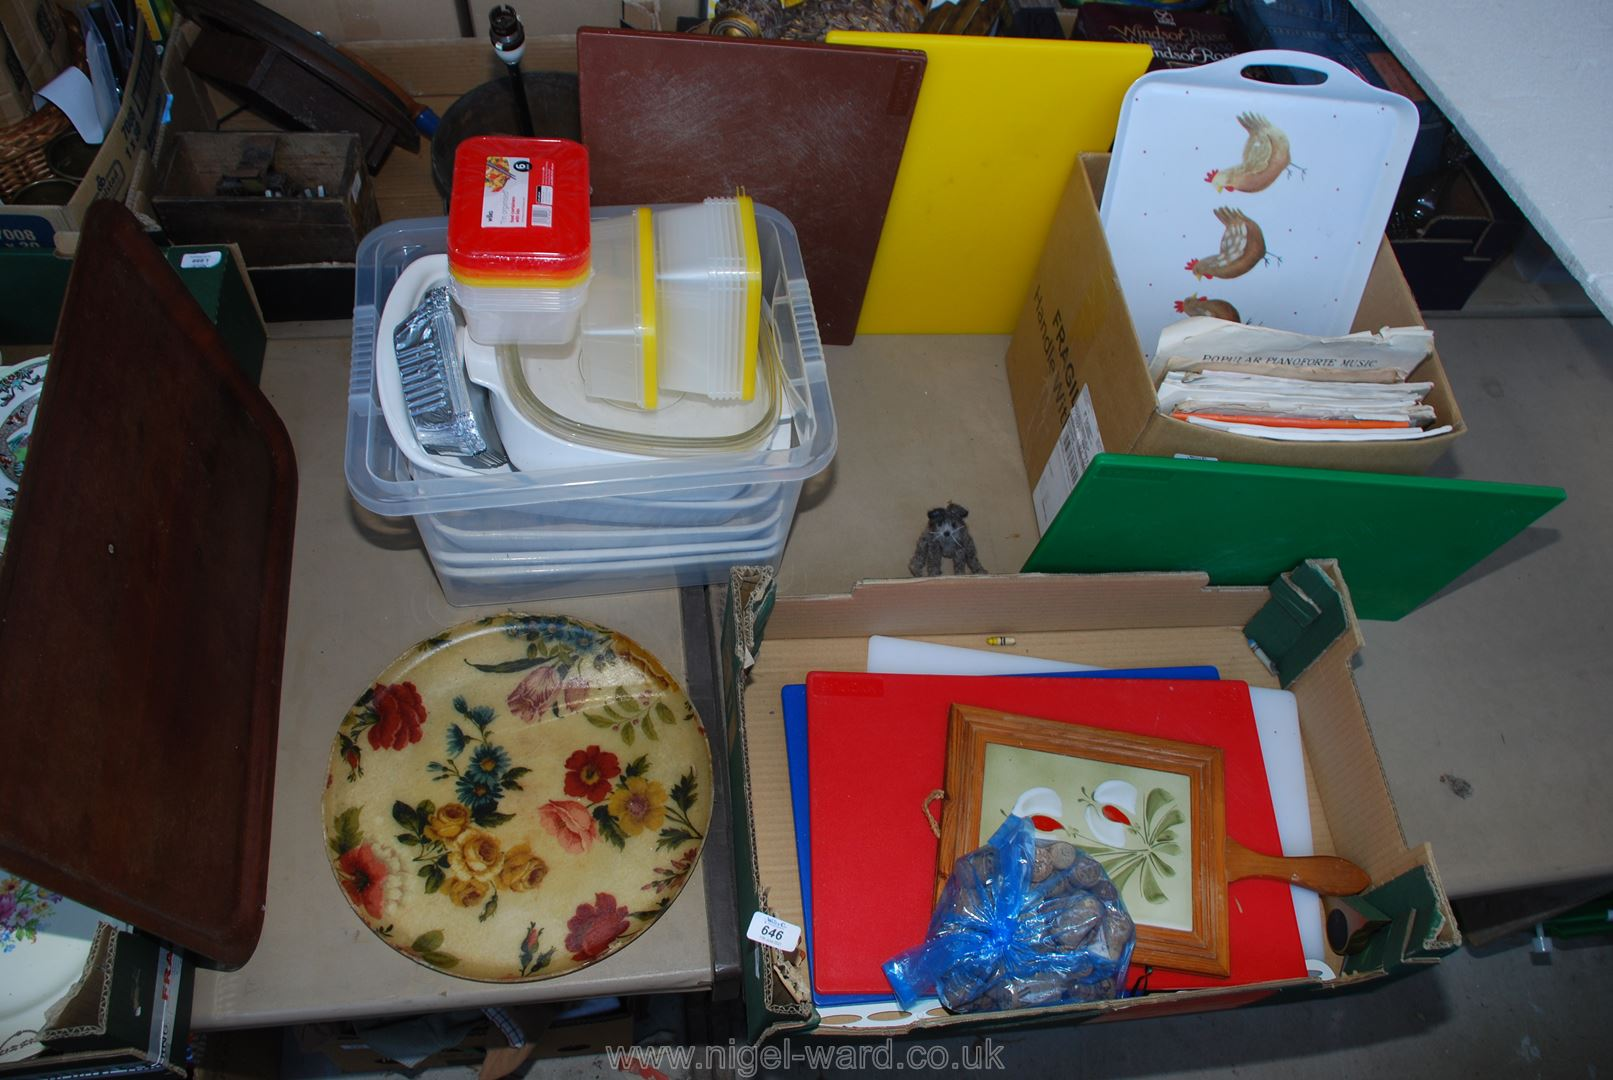 A quantity of coloured chopping boards, trays, white large cooking dishes etc.